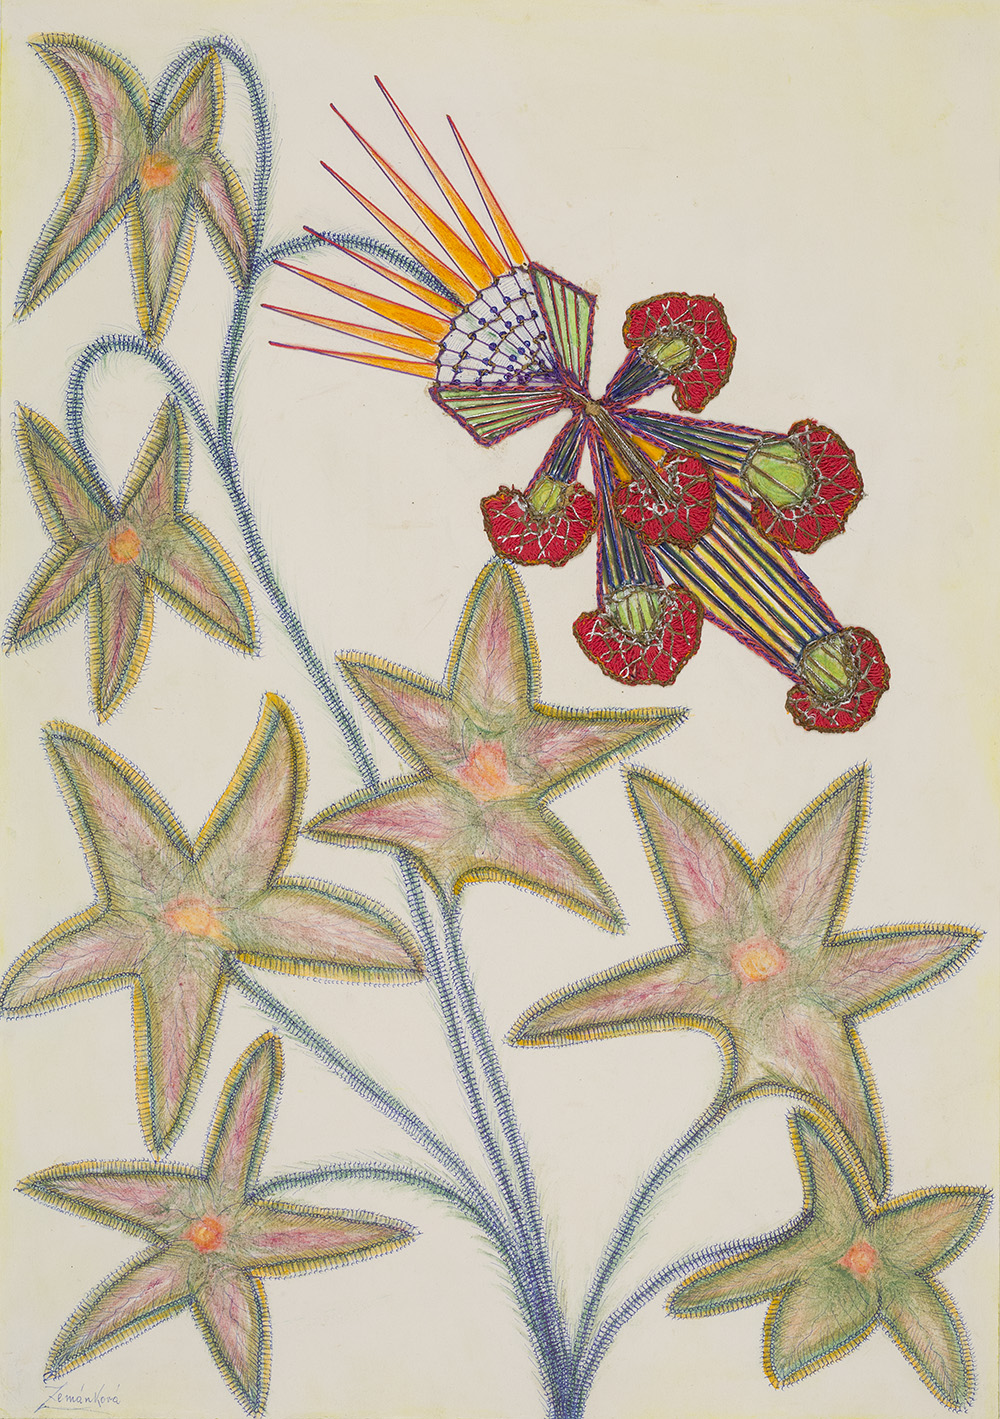 Anna Zemánková, Untitled, 1970s, Pastel, ball point pen and embroidery on paper, 24.61 x 17.72 inches, 62.5 x 45 cm, AZe 589